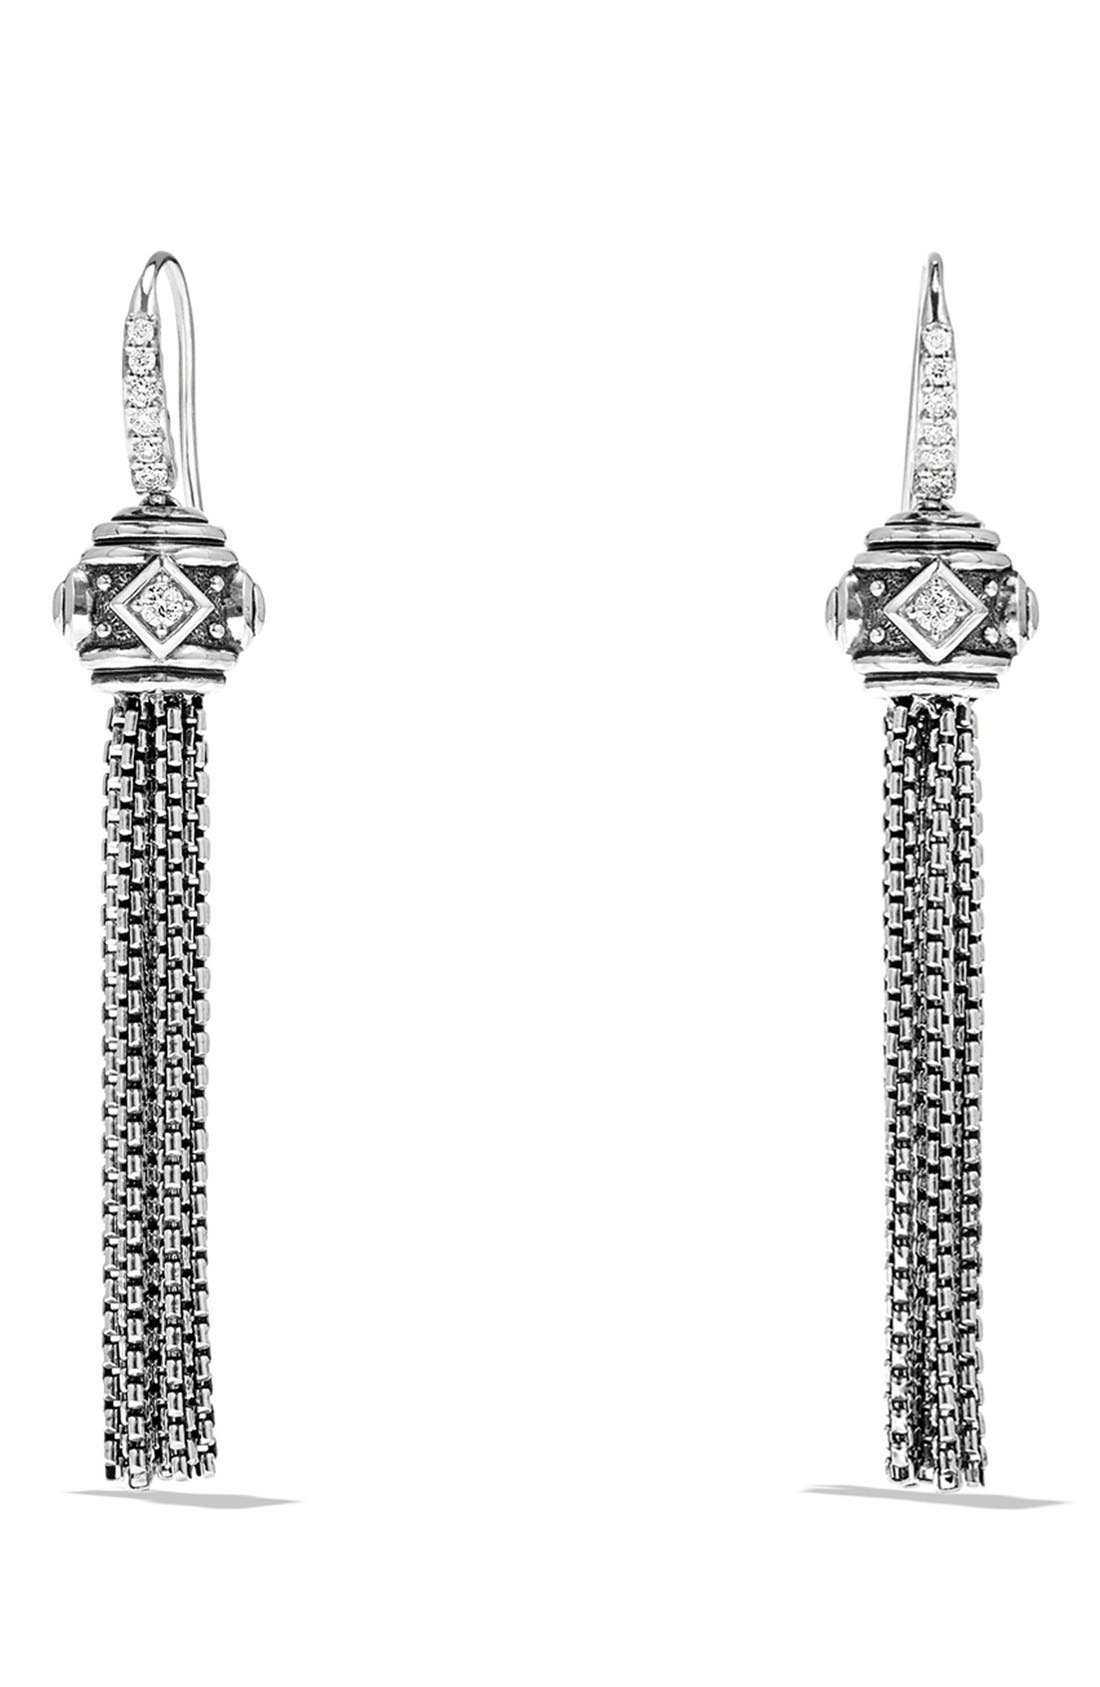 'Renaissance' Tassel Earrings with Diamonds in Silver,                         Main,                         color, 040